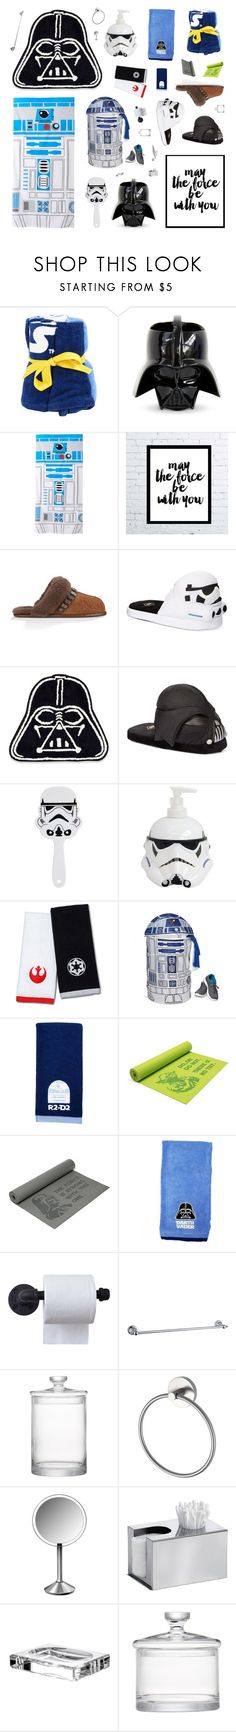 """Star Wars Bathroom"" by belenloperfido ❤ liked on Polyvore featuring interior, interiors, interior design, home, home decor, interior decorating, Jay Franco & Sons, UGG Australia, Bioworld and ThinkGeek"